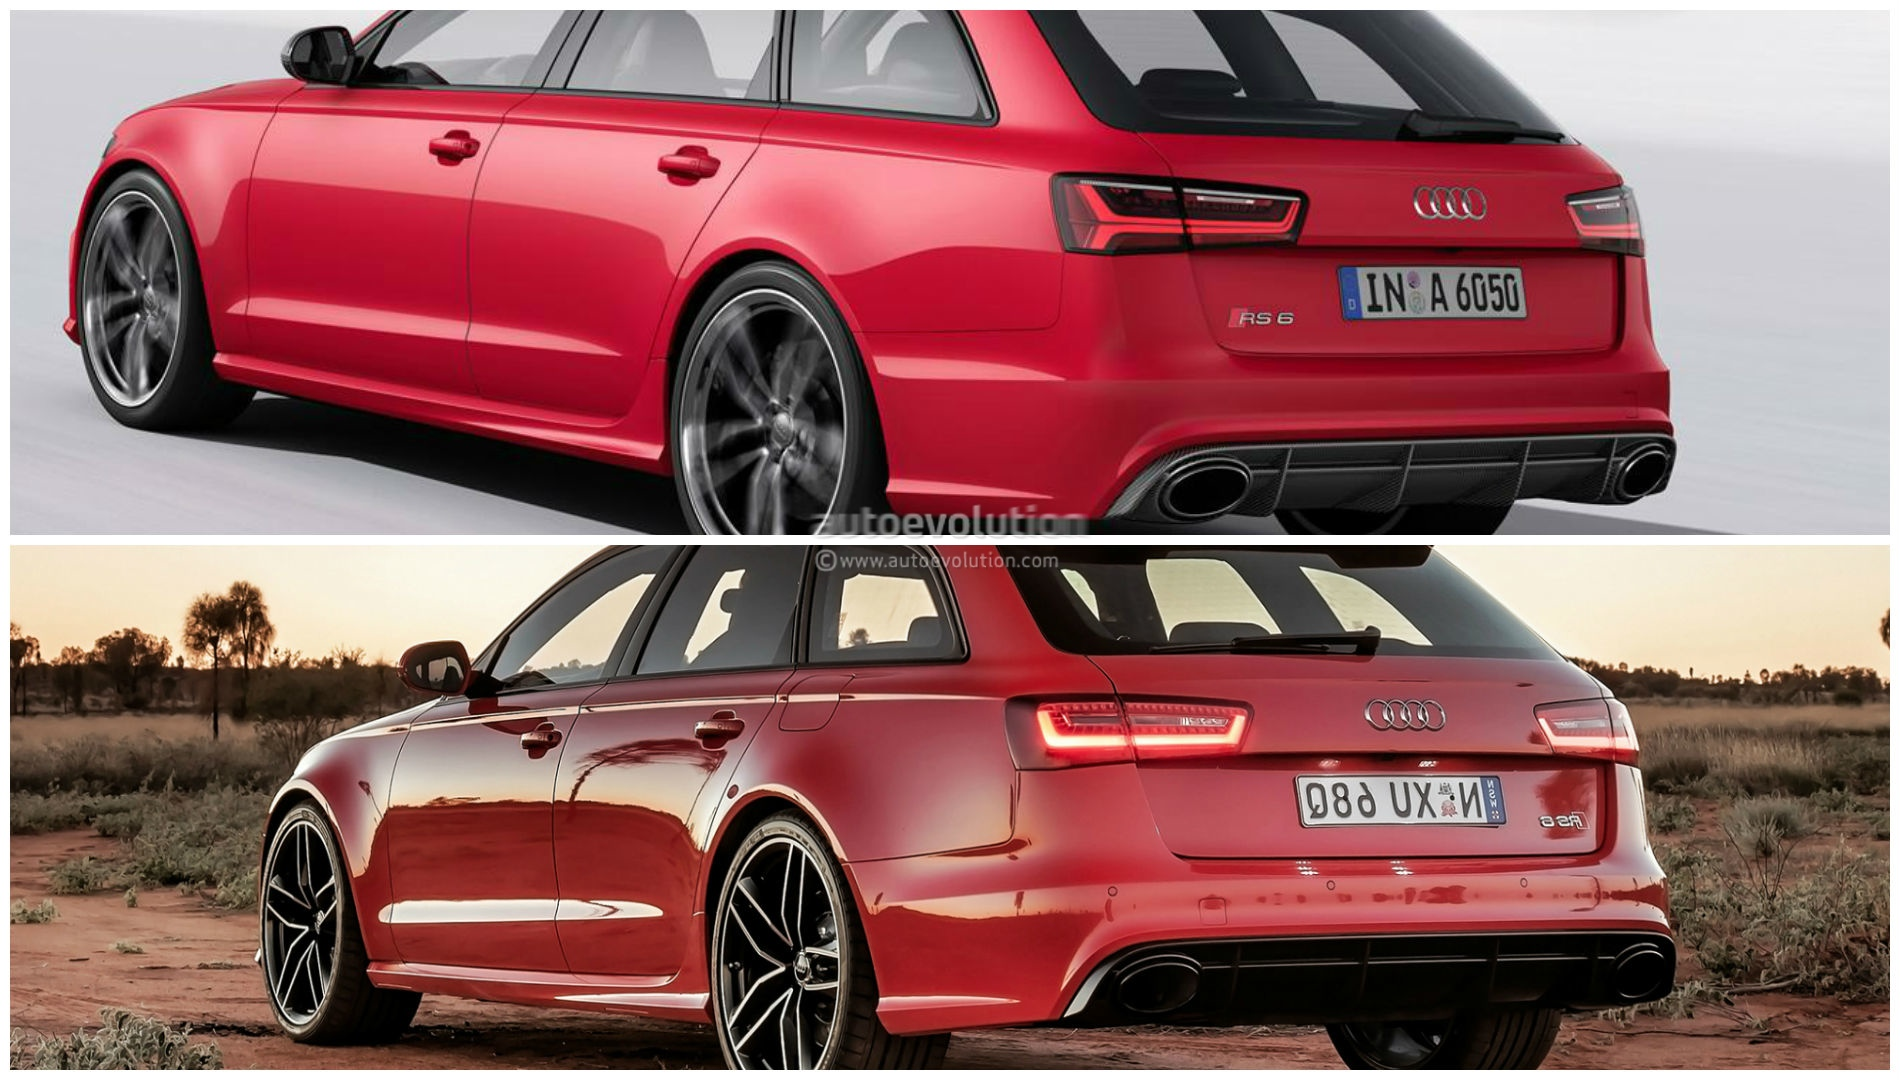 2015 Audi Rs6 Avant Facelift Photo Comparison Subtle